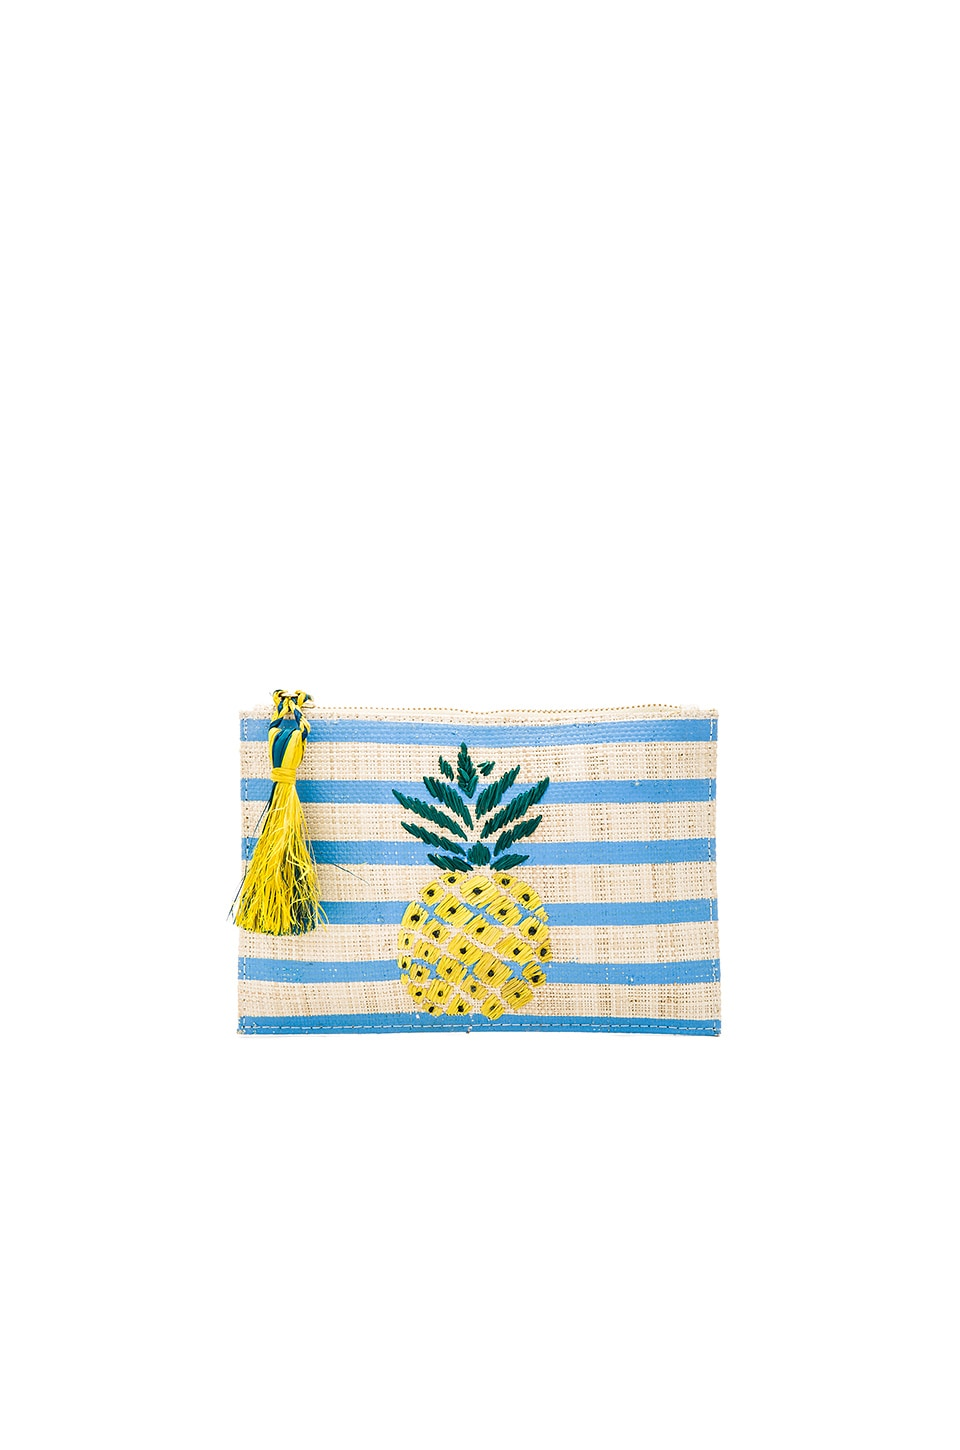 KAYU Pineapple Clutch in Blue